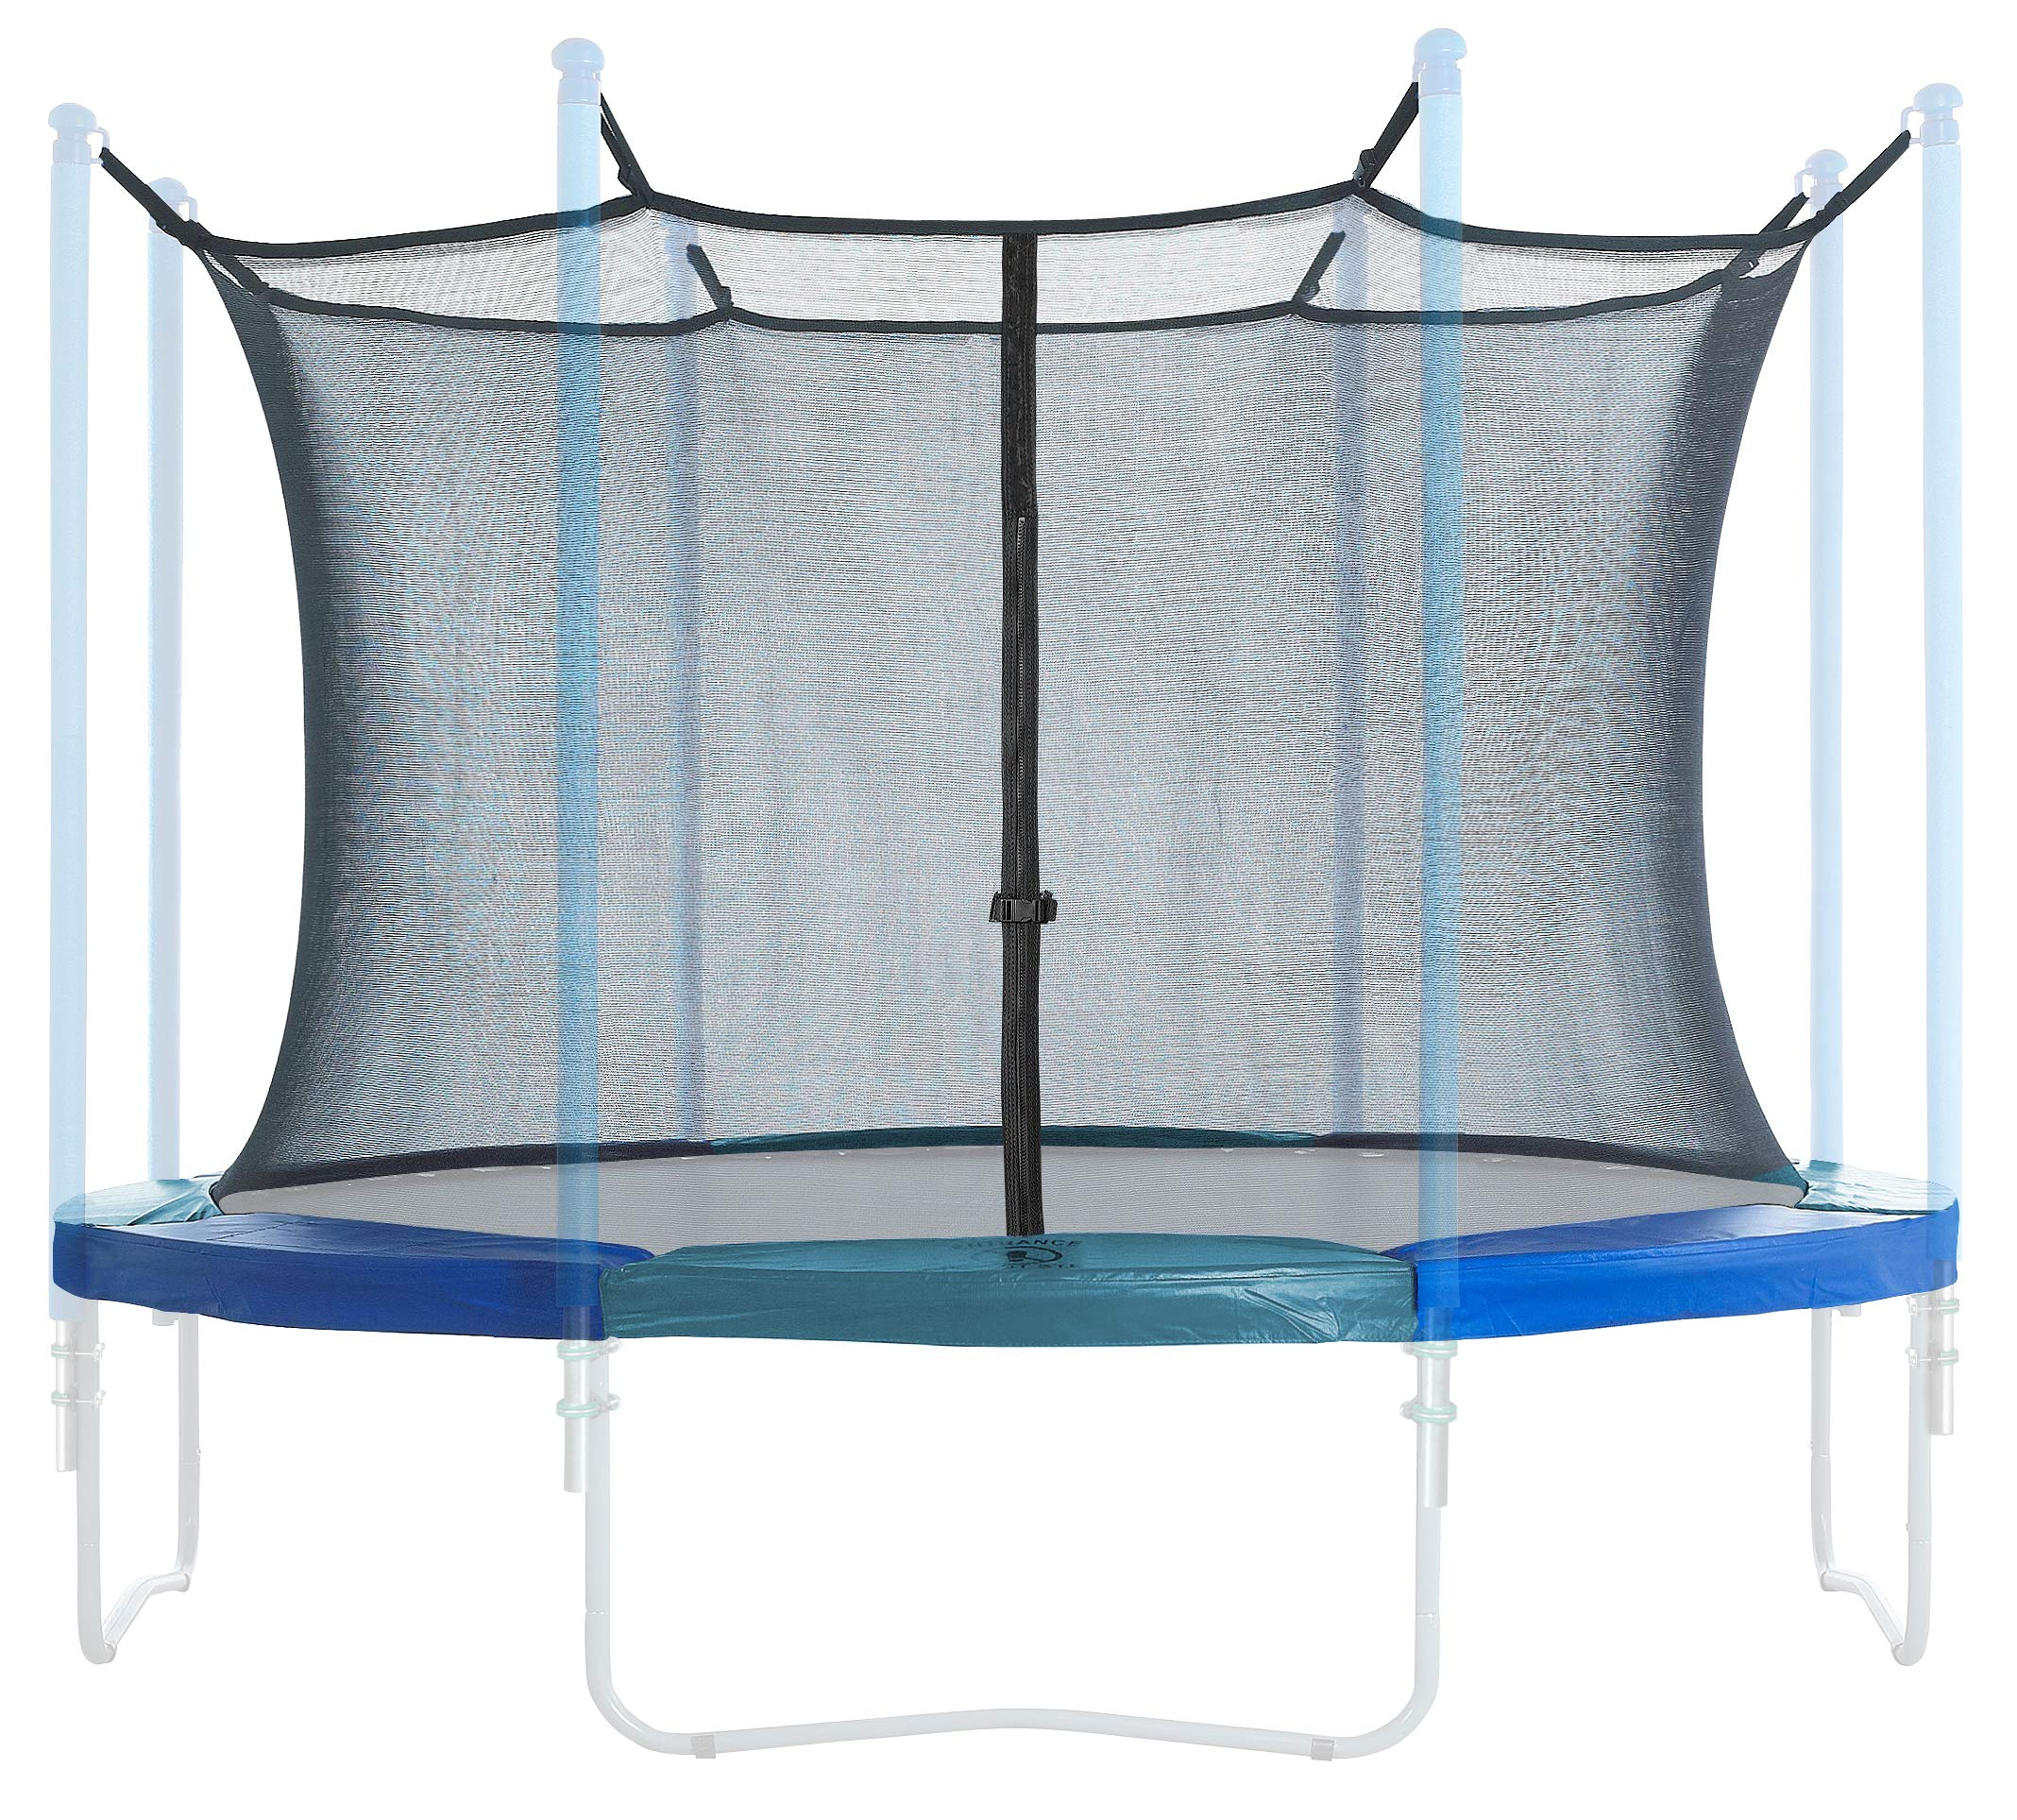 Trampoline Enclosure and Safety Pad Set | Round Frame Safety pad 15 Foot | 6 Poles or 3 Arches | Inside Enclosure Safety net |Spring Cover |Universal Fit | Outdoor Trampoline | Blue/Green Pad ♂